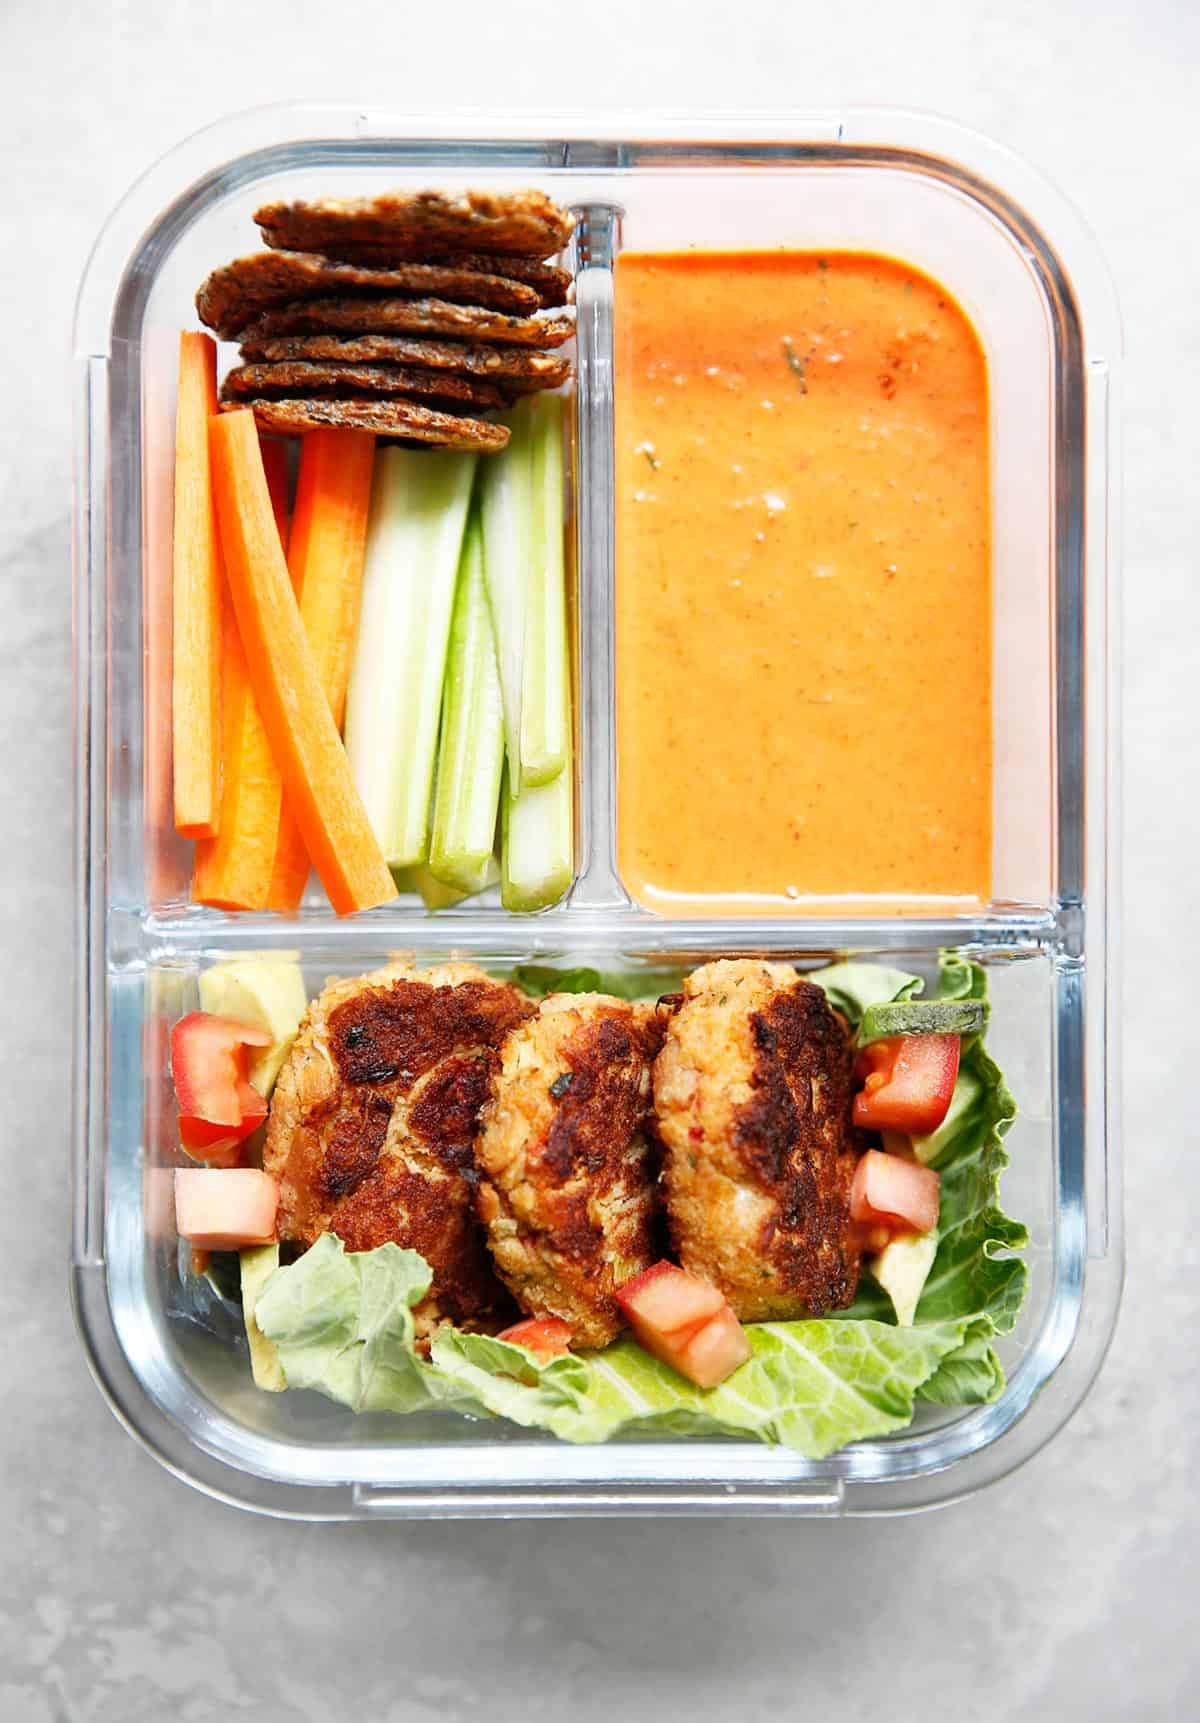 Paleo Tuna Cakes Recipe in meal prep container